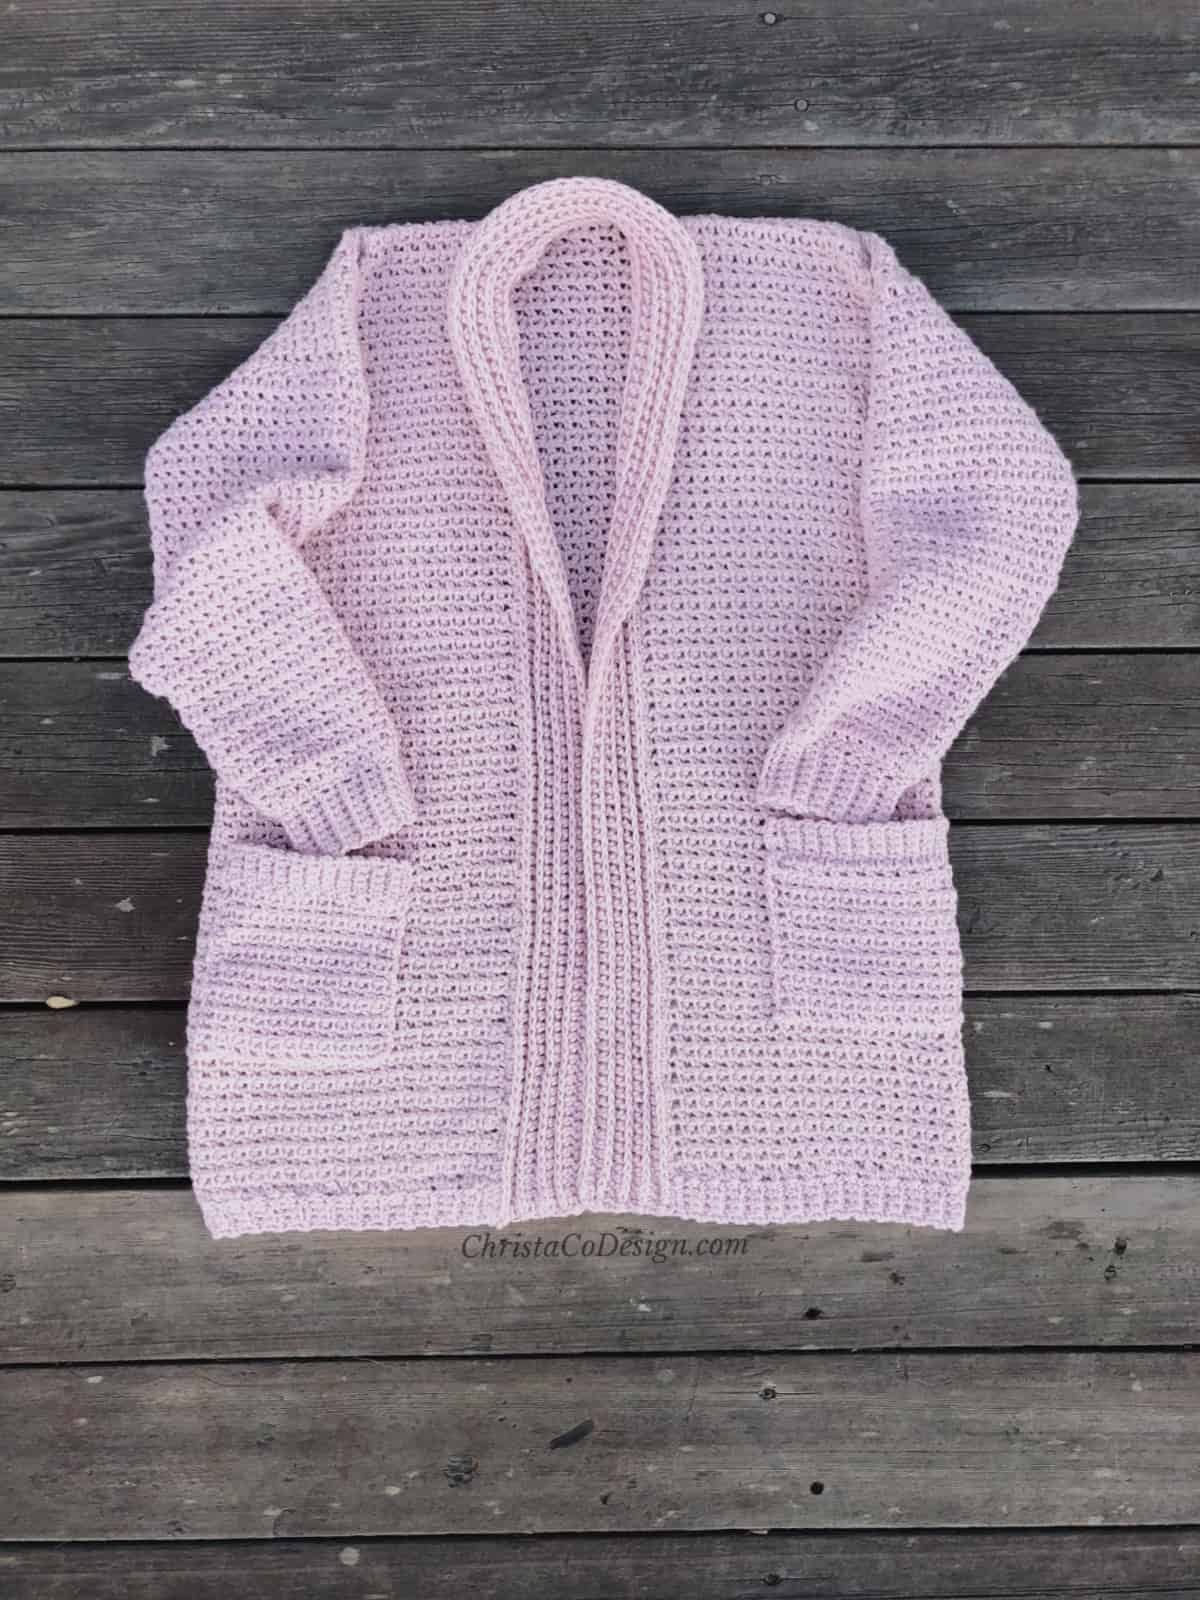 picture of cozy crochet cardigan in pink laid flat on boards